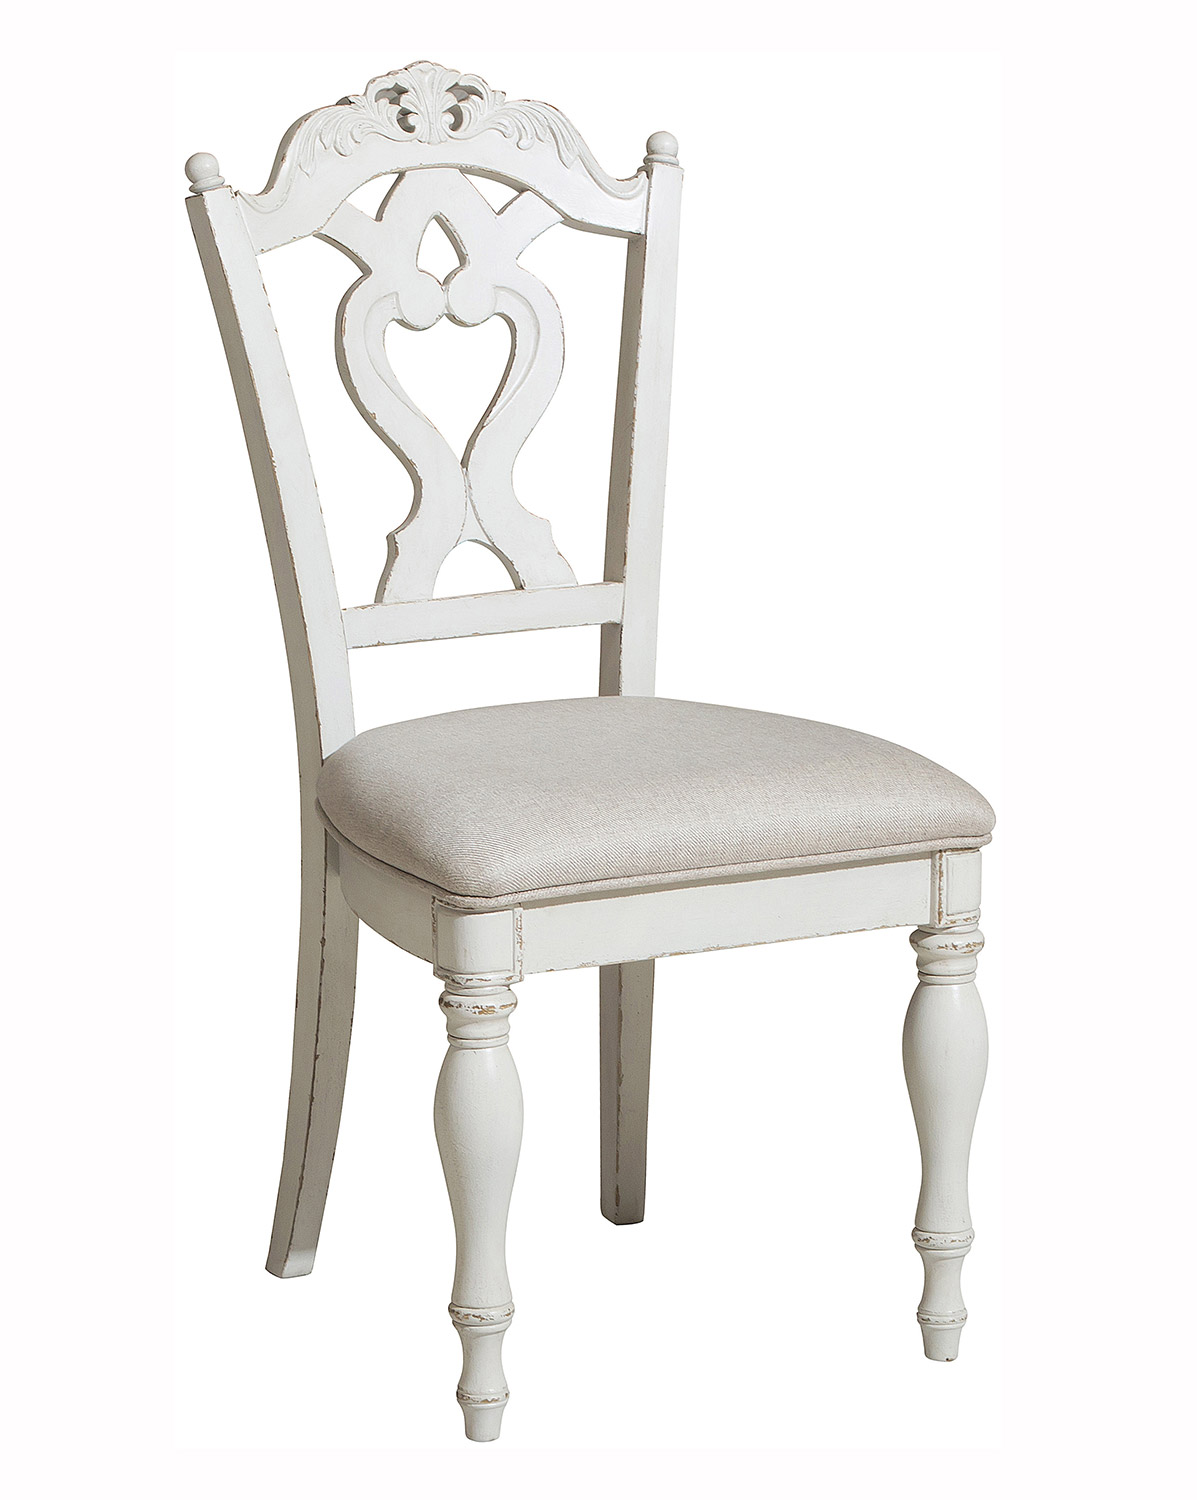 Homelegance Cinderella Desk Chair - Antique White with Gray Rub-Through